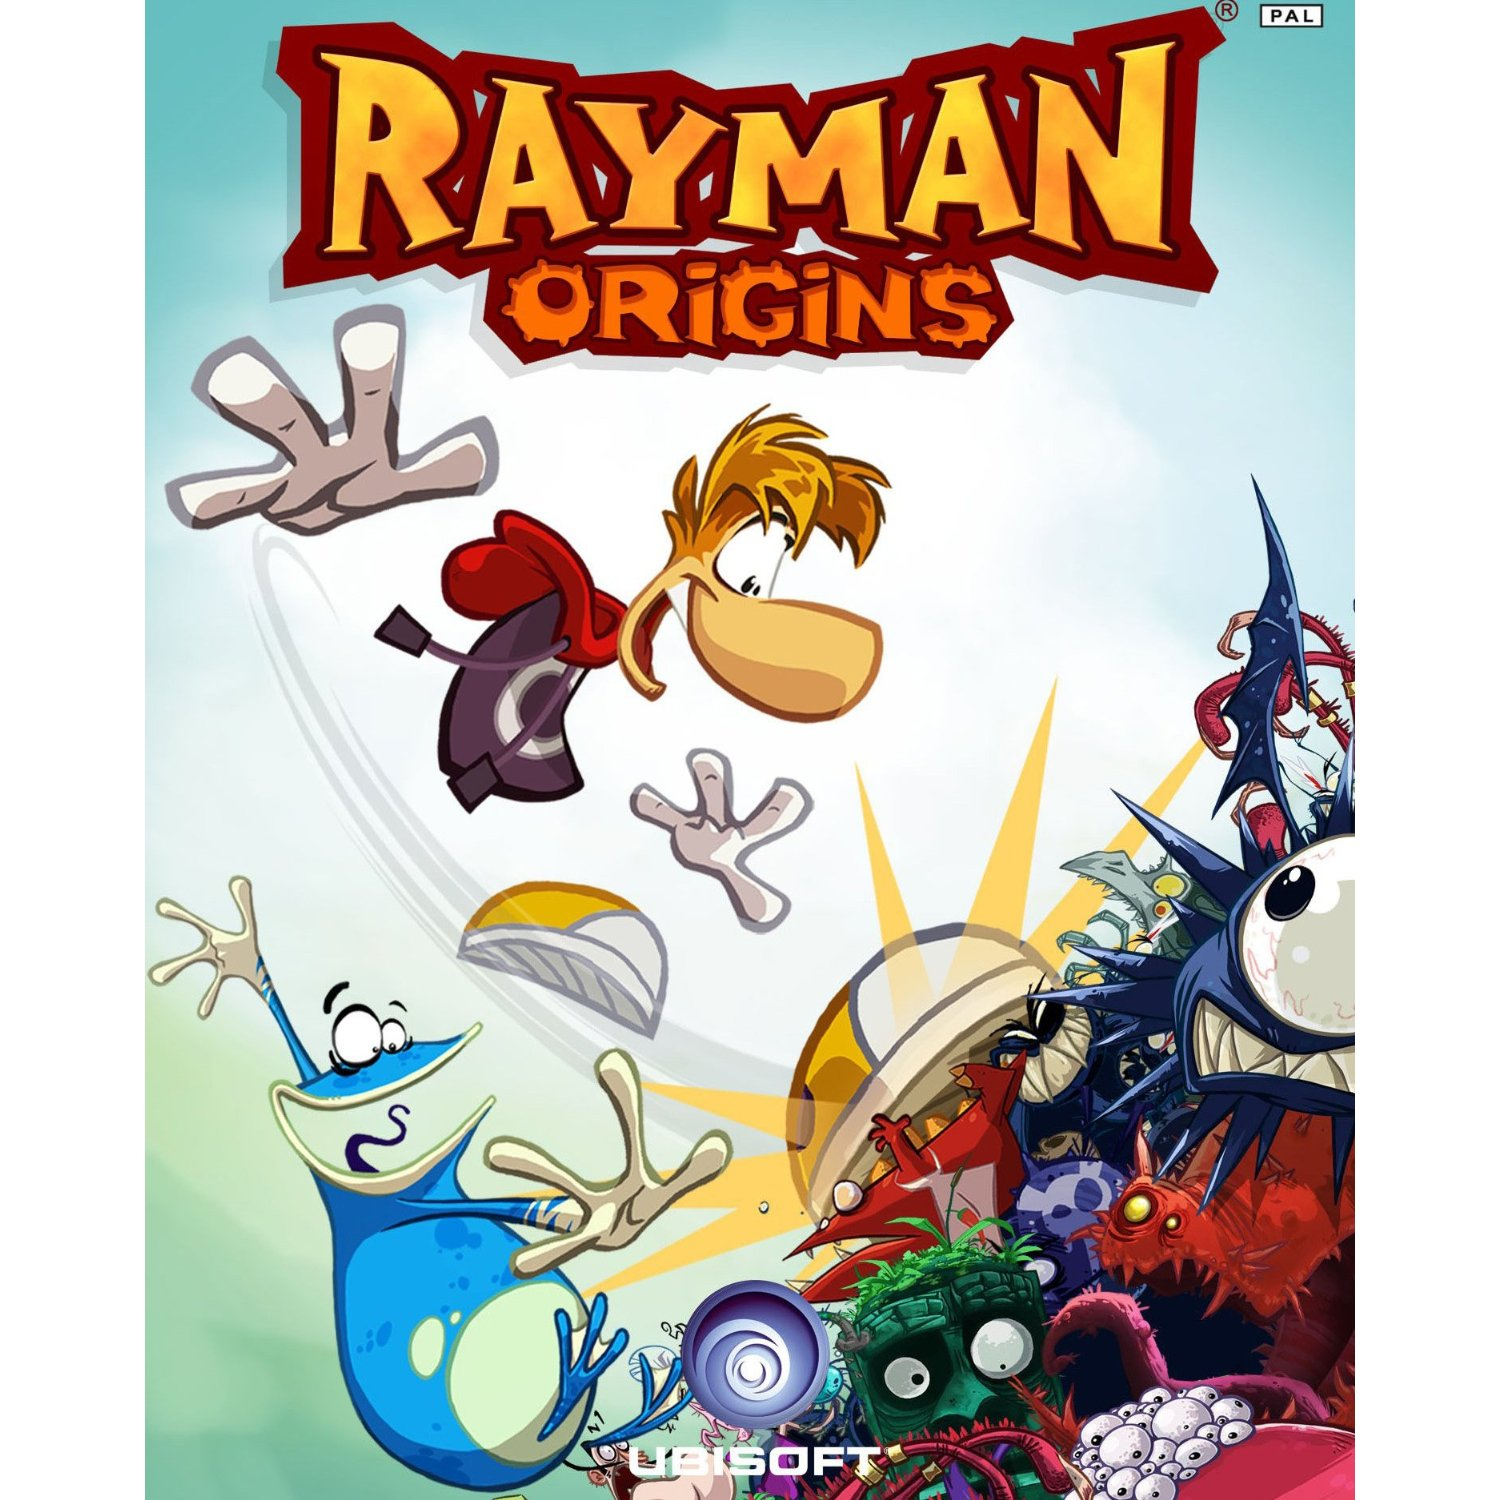 telecharger jeux rayman origins rip dycus razor pc t l charger jeux psp gratuit megaupload. Black Bedroom Furniture Sets. Home Design Ideas